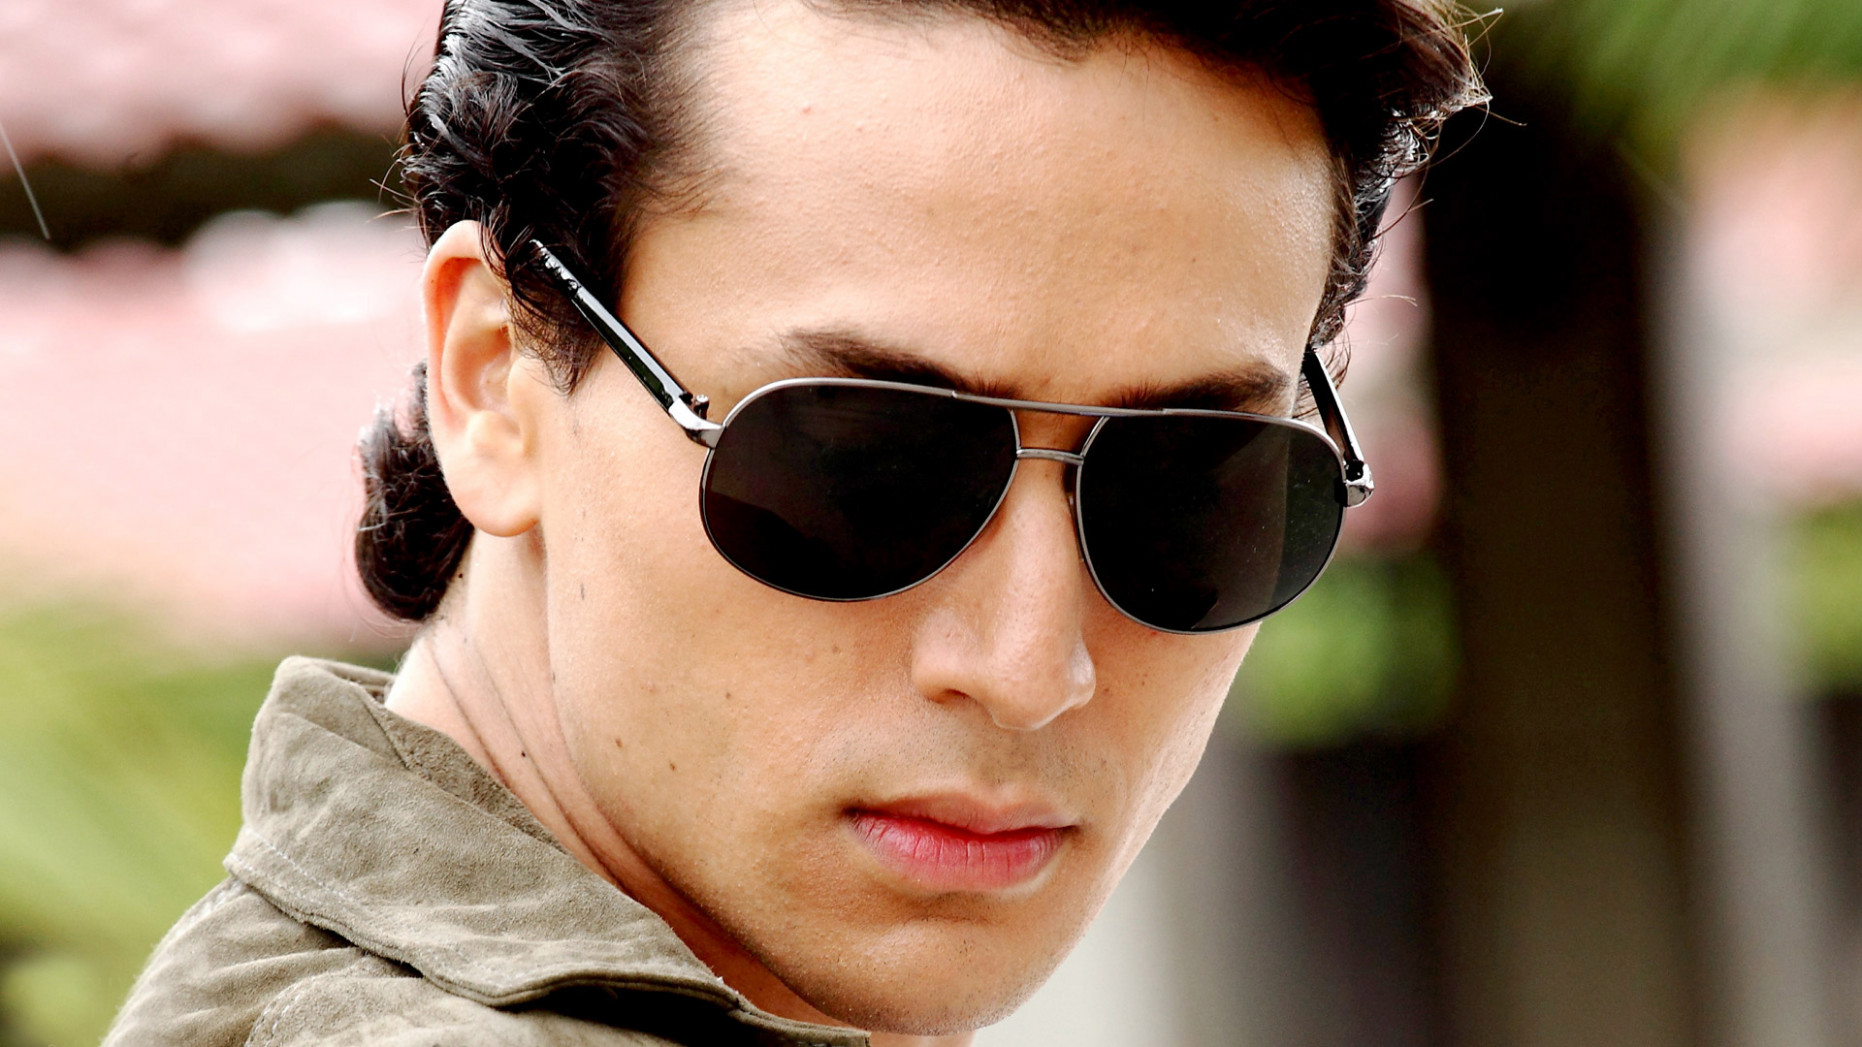 Tiger Shroff Wallpapers from Gym